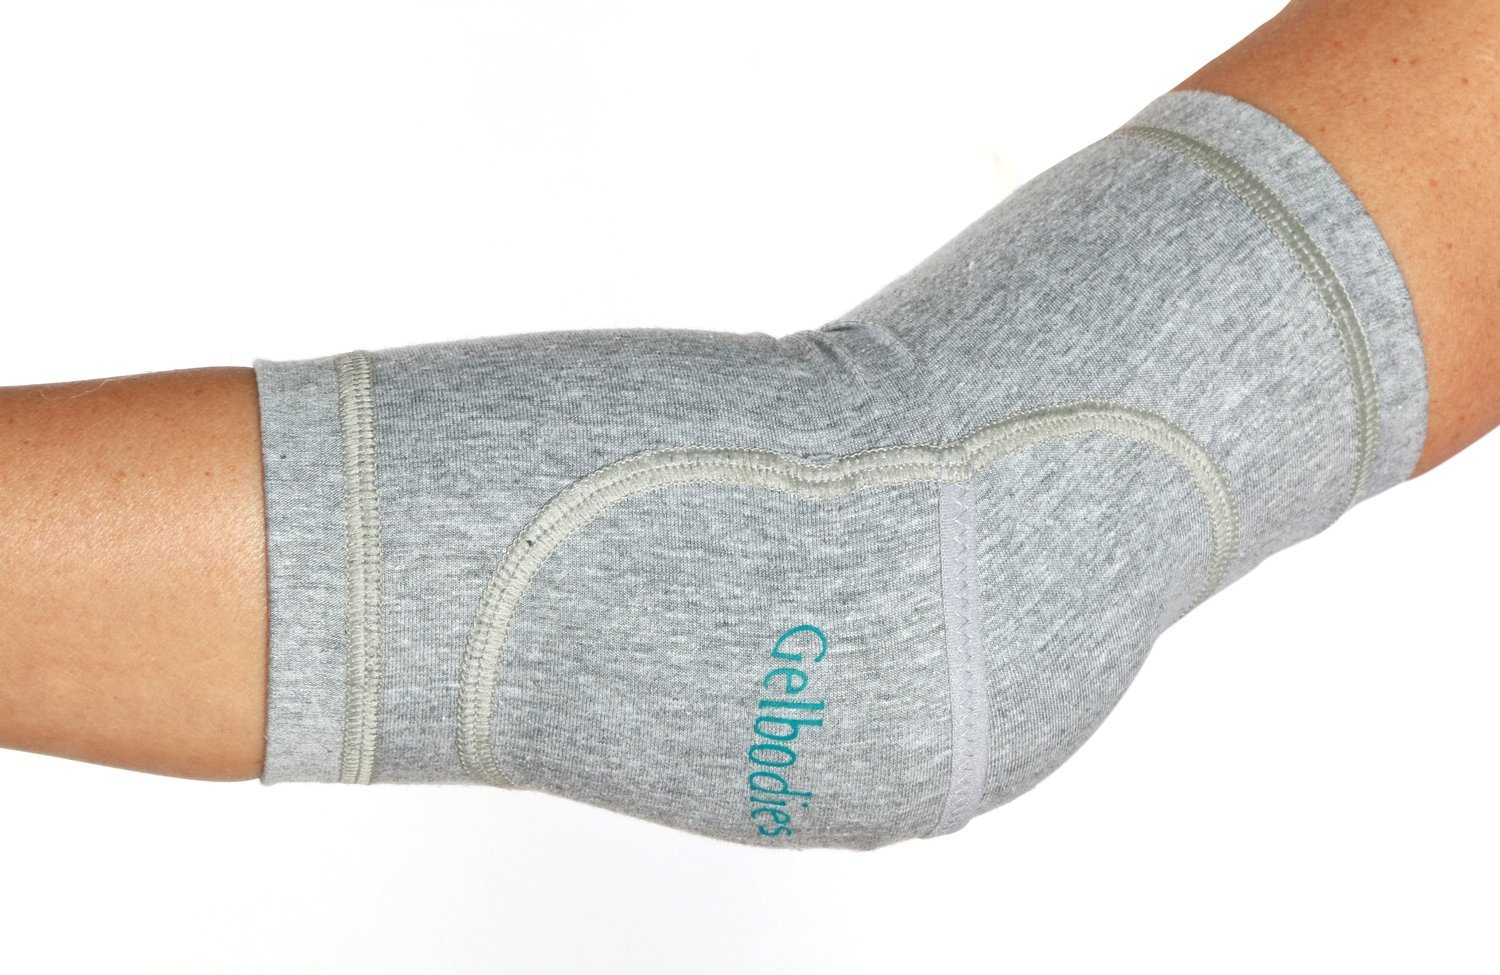 GelBodies Heel & Elbow Protection